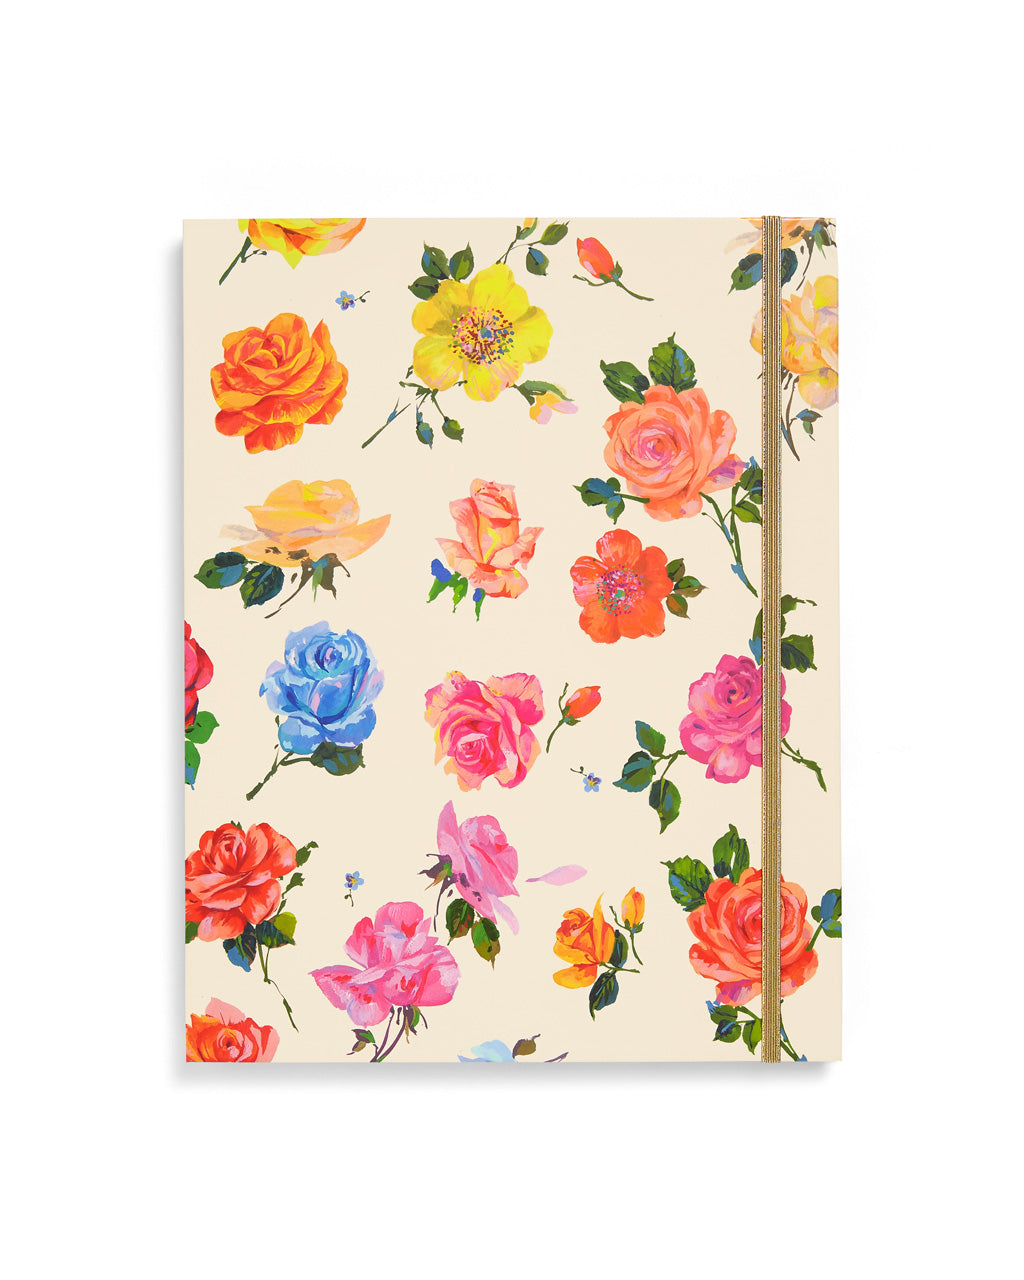 This Get It Together File Folder has a floral pattern cover designed by Helen Dealtry.